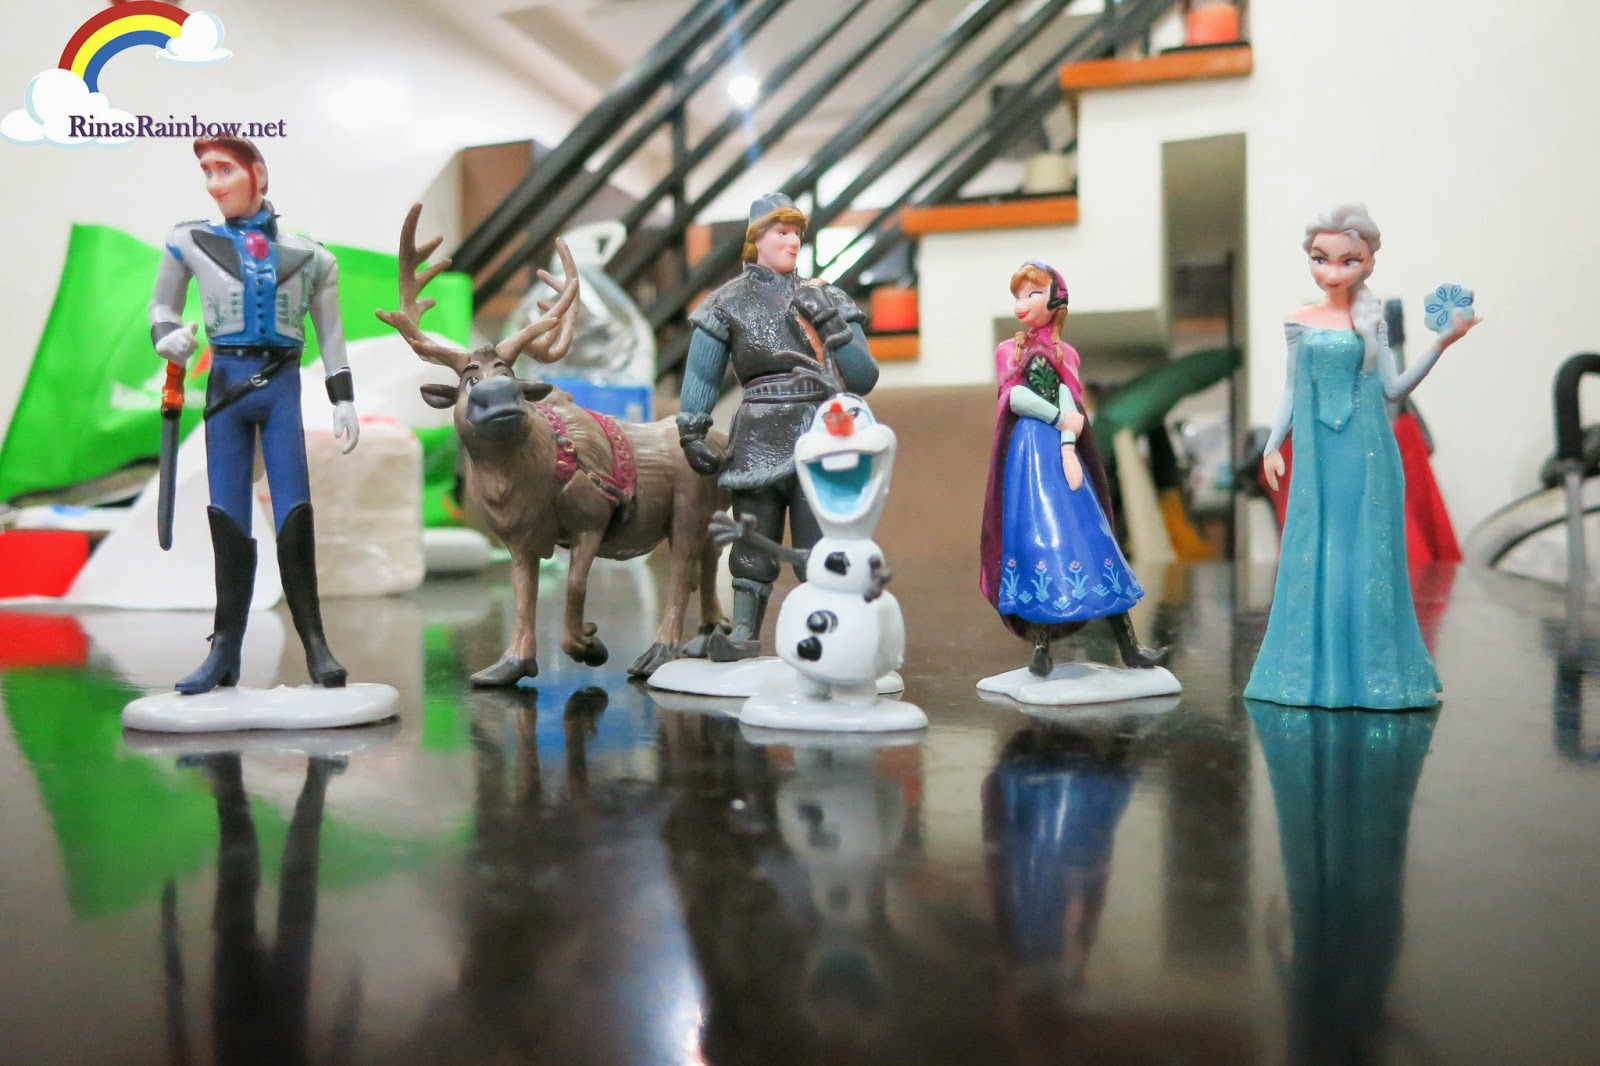 Disney frozen plastic figurines